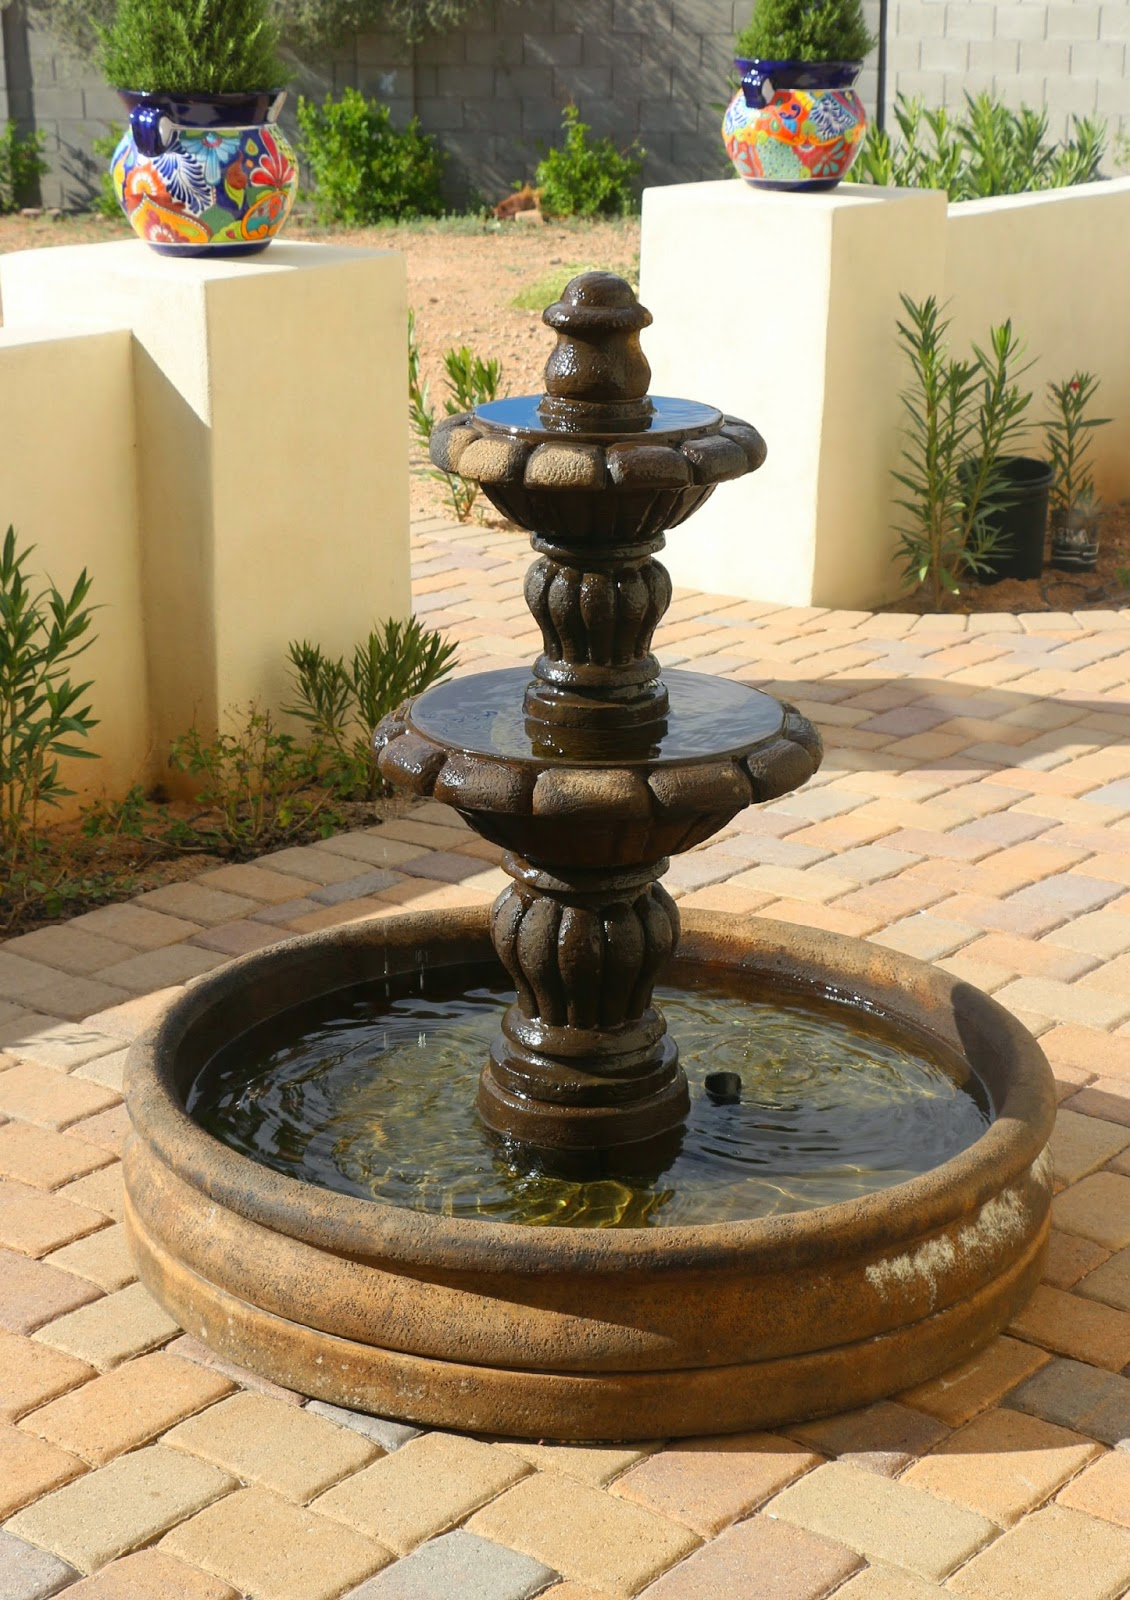 spanish fountain, al's espana fountain, garden fountain, spanish style fountain, garden fountain on pavers